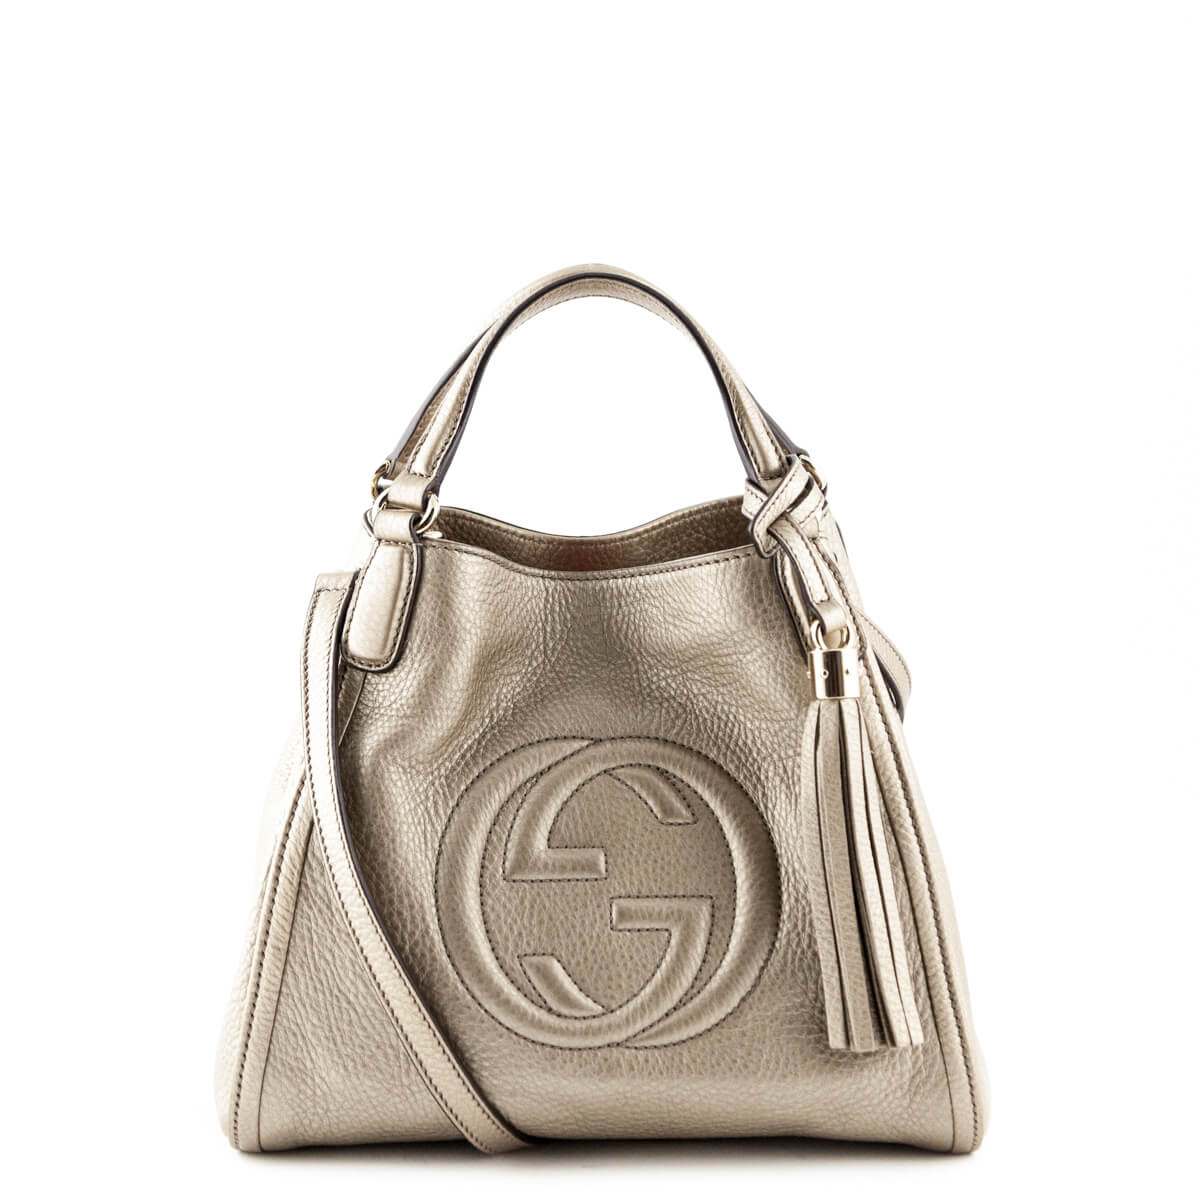 35600f80d3b Gucci Pewter Metallic Small Soho Tassel Tote - LOVE that BAG - Preowned  Authentic Designer Handbags ...